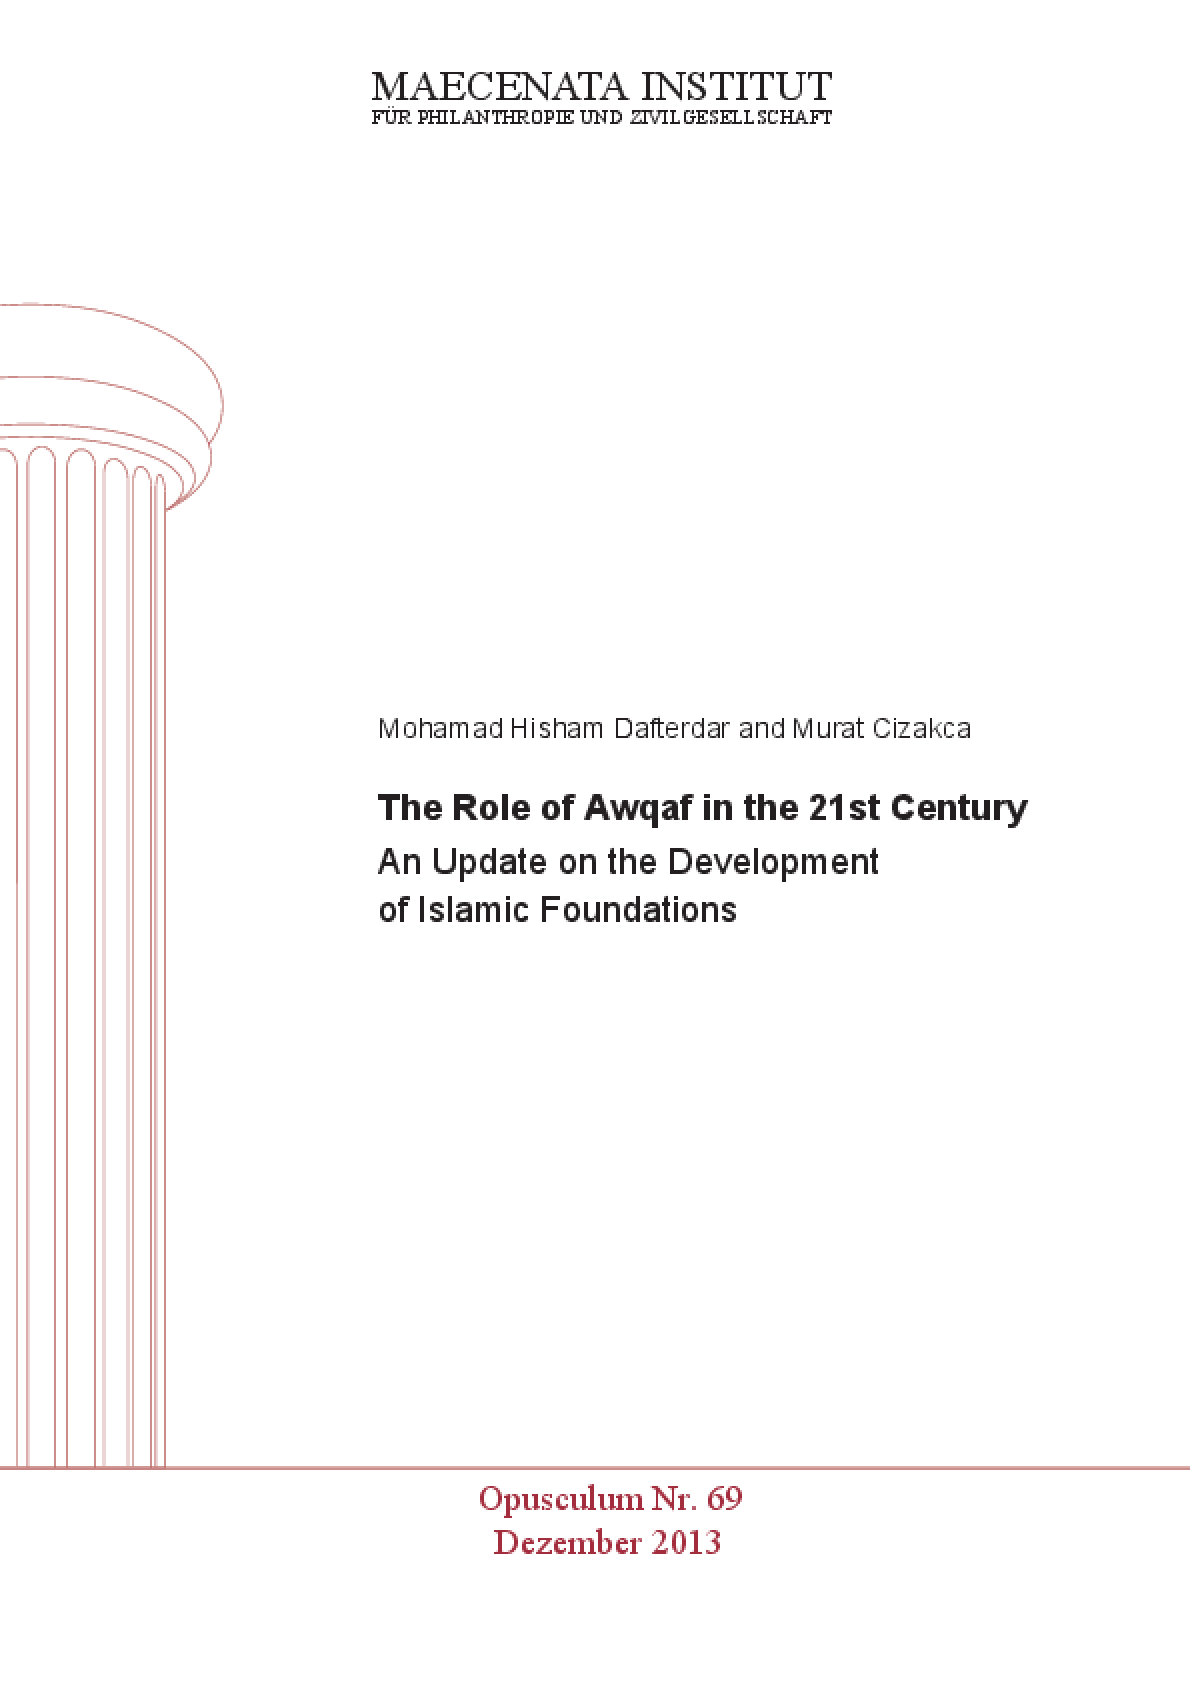 The Role of Awqaf in the 21st Century: An Update on the Development of Islamic Foundations